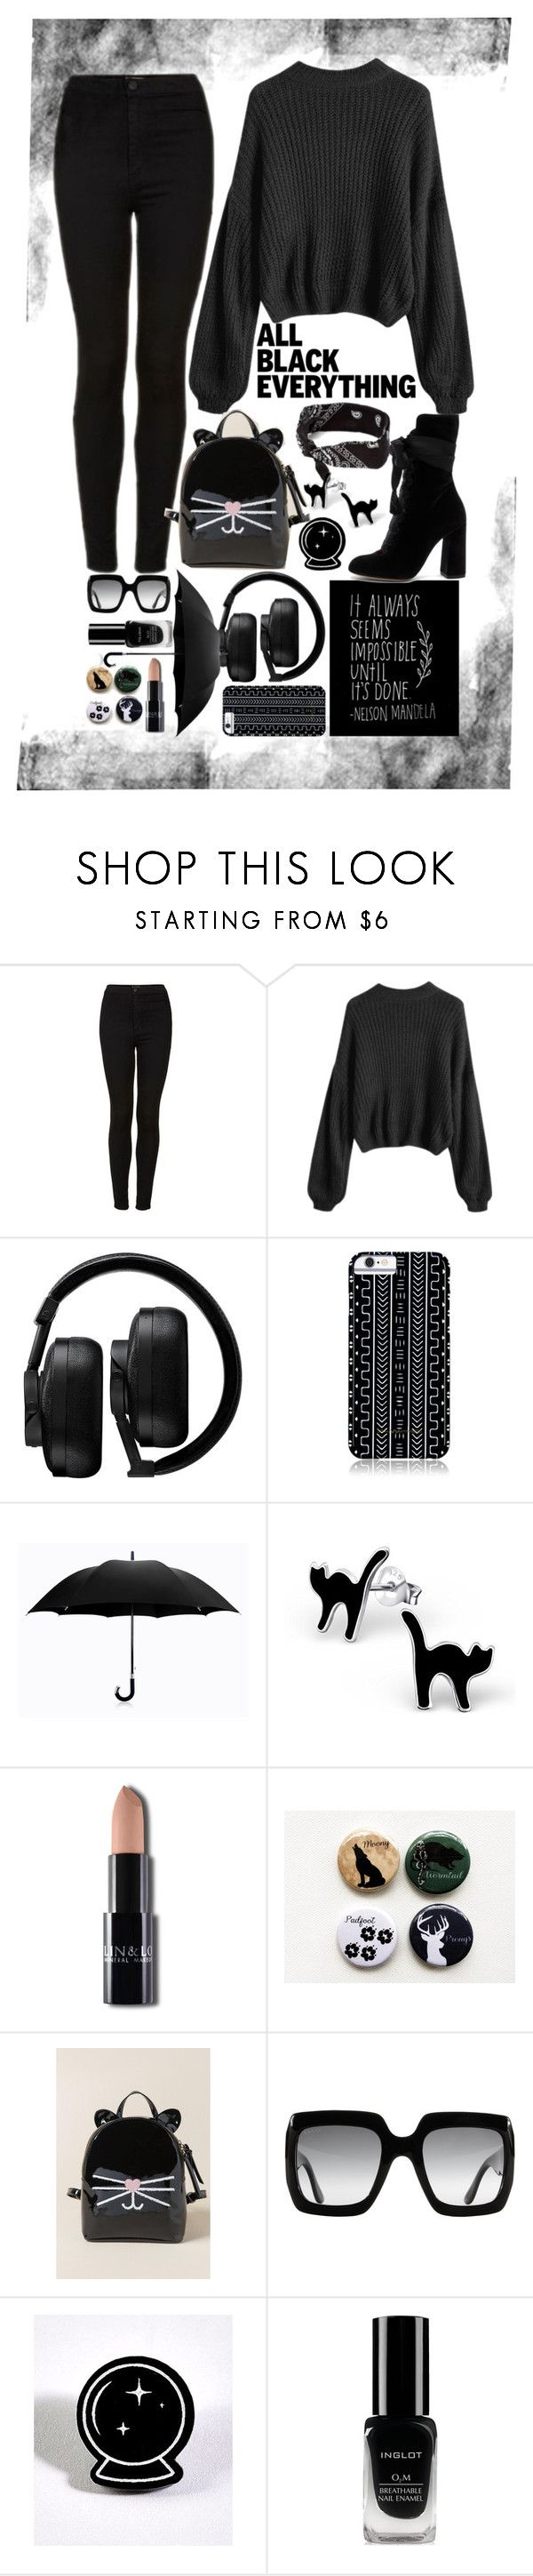 """All black♥"" by majami05 ❤ liked on Polyvore featuring Topshop, claire's, Master & Dynamic, Savannah Hayes, Davek, Francesca's, Gucci, Inglot and Chloé"